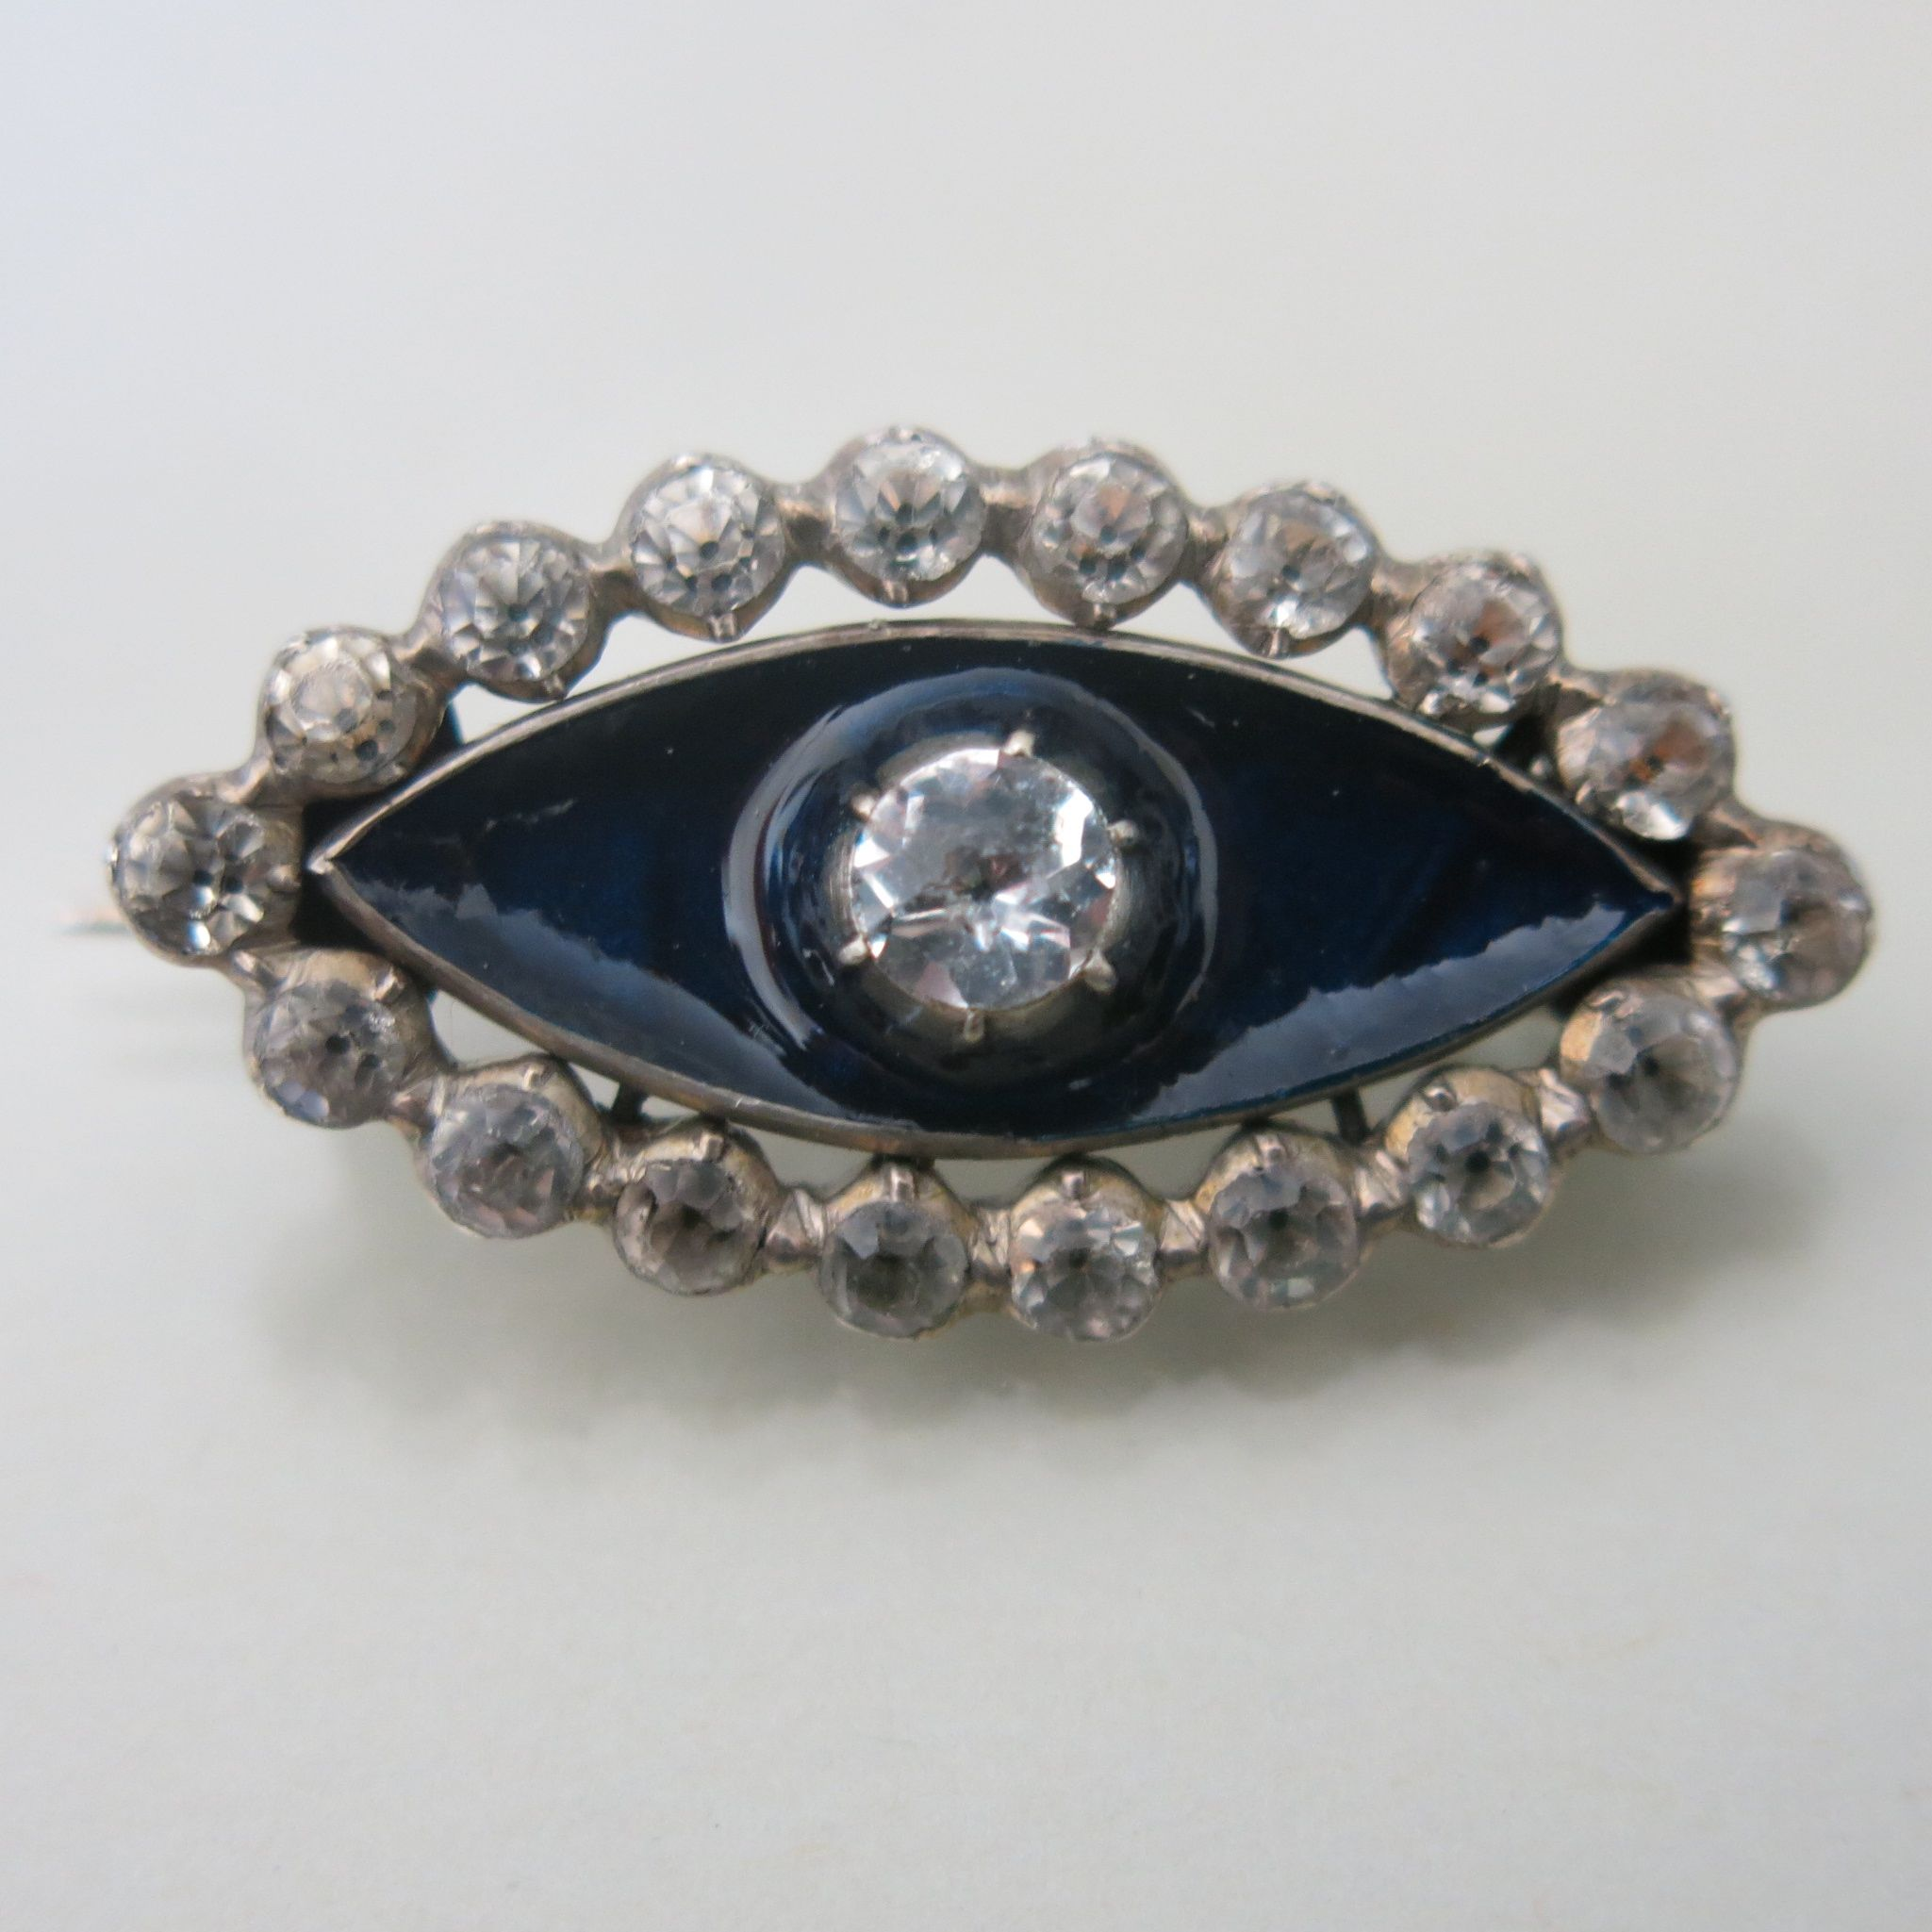 uk large crystal qvc wilson brooch butler page product eye